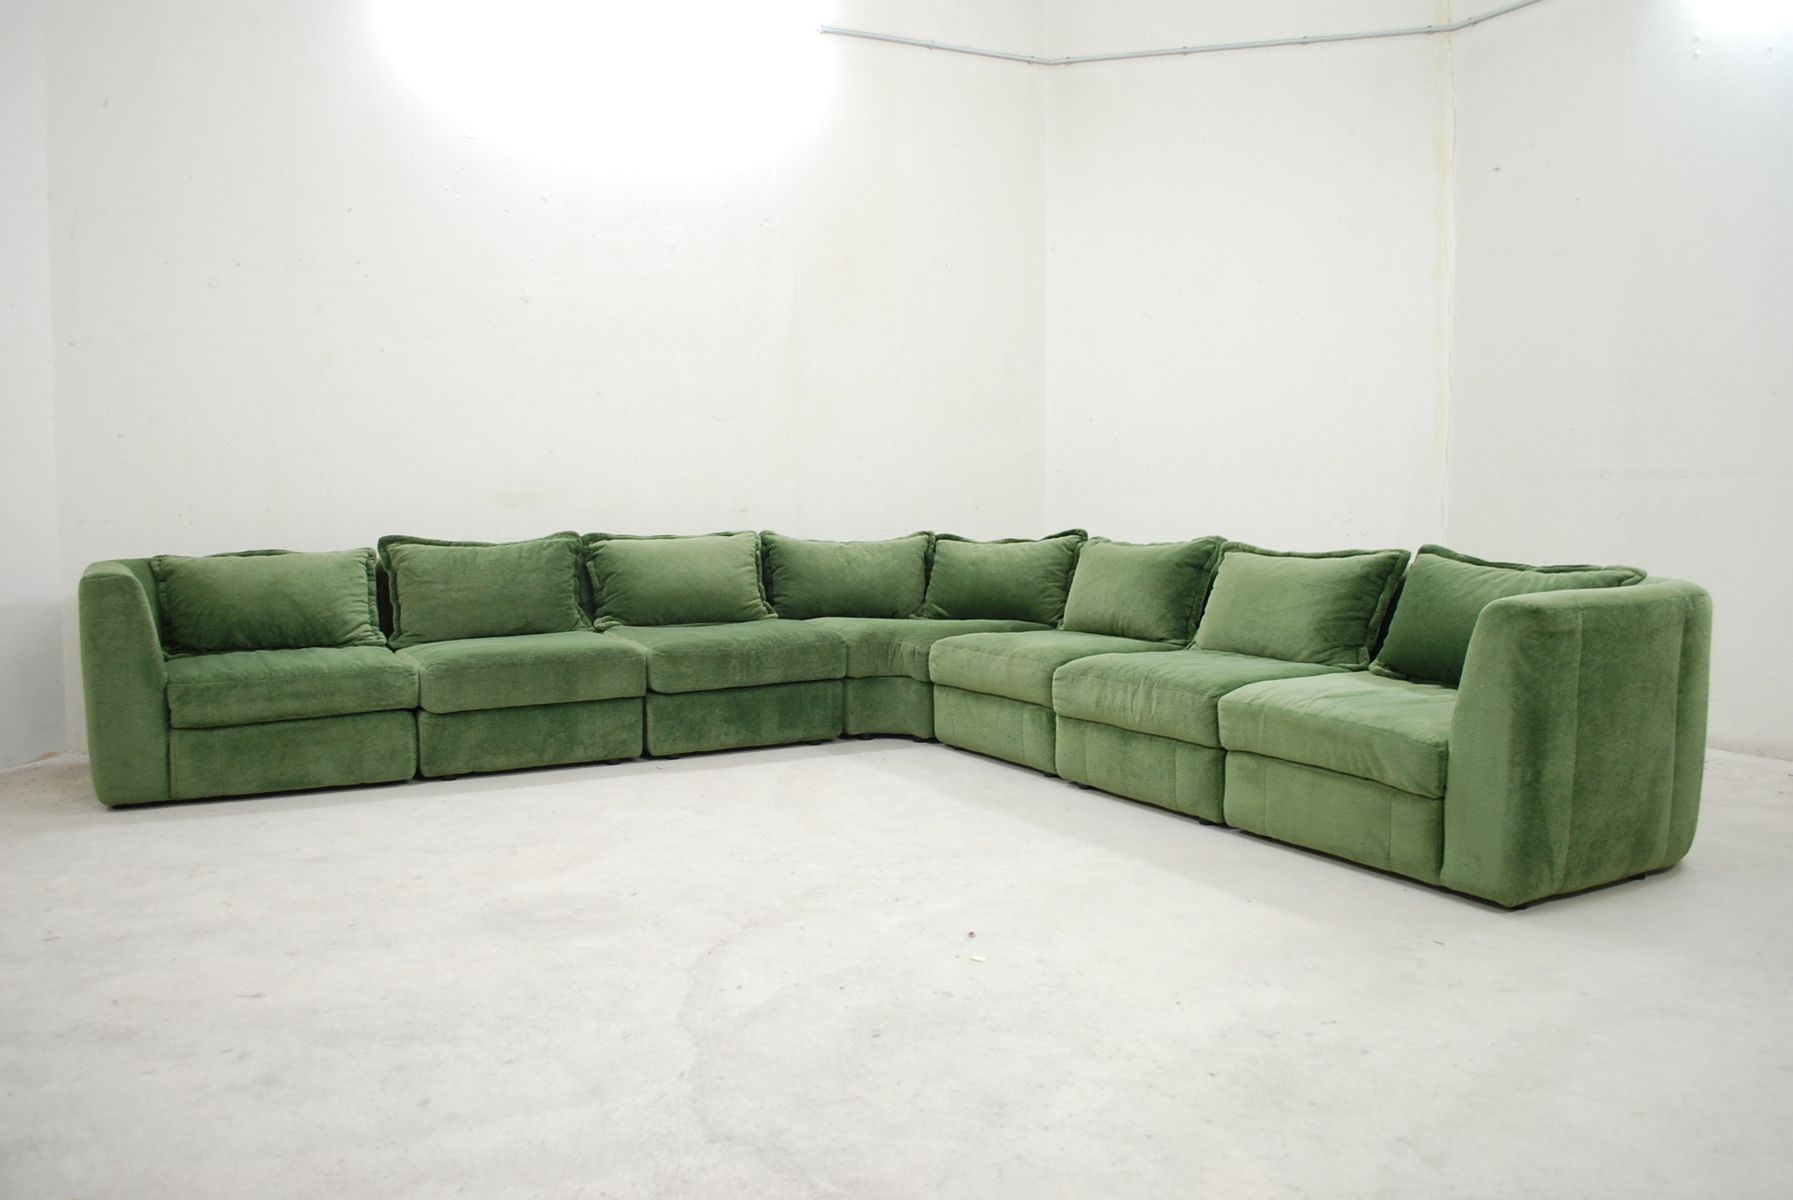 Vintage green modular sofa from rolf benz for sale at pamono for Q couch modular sofa